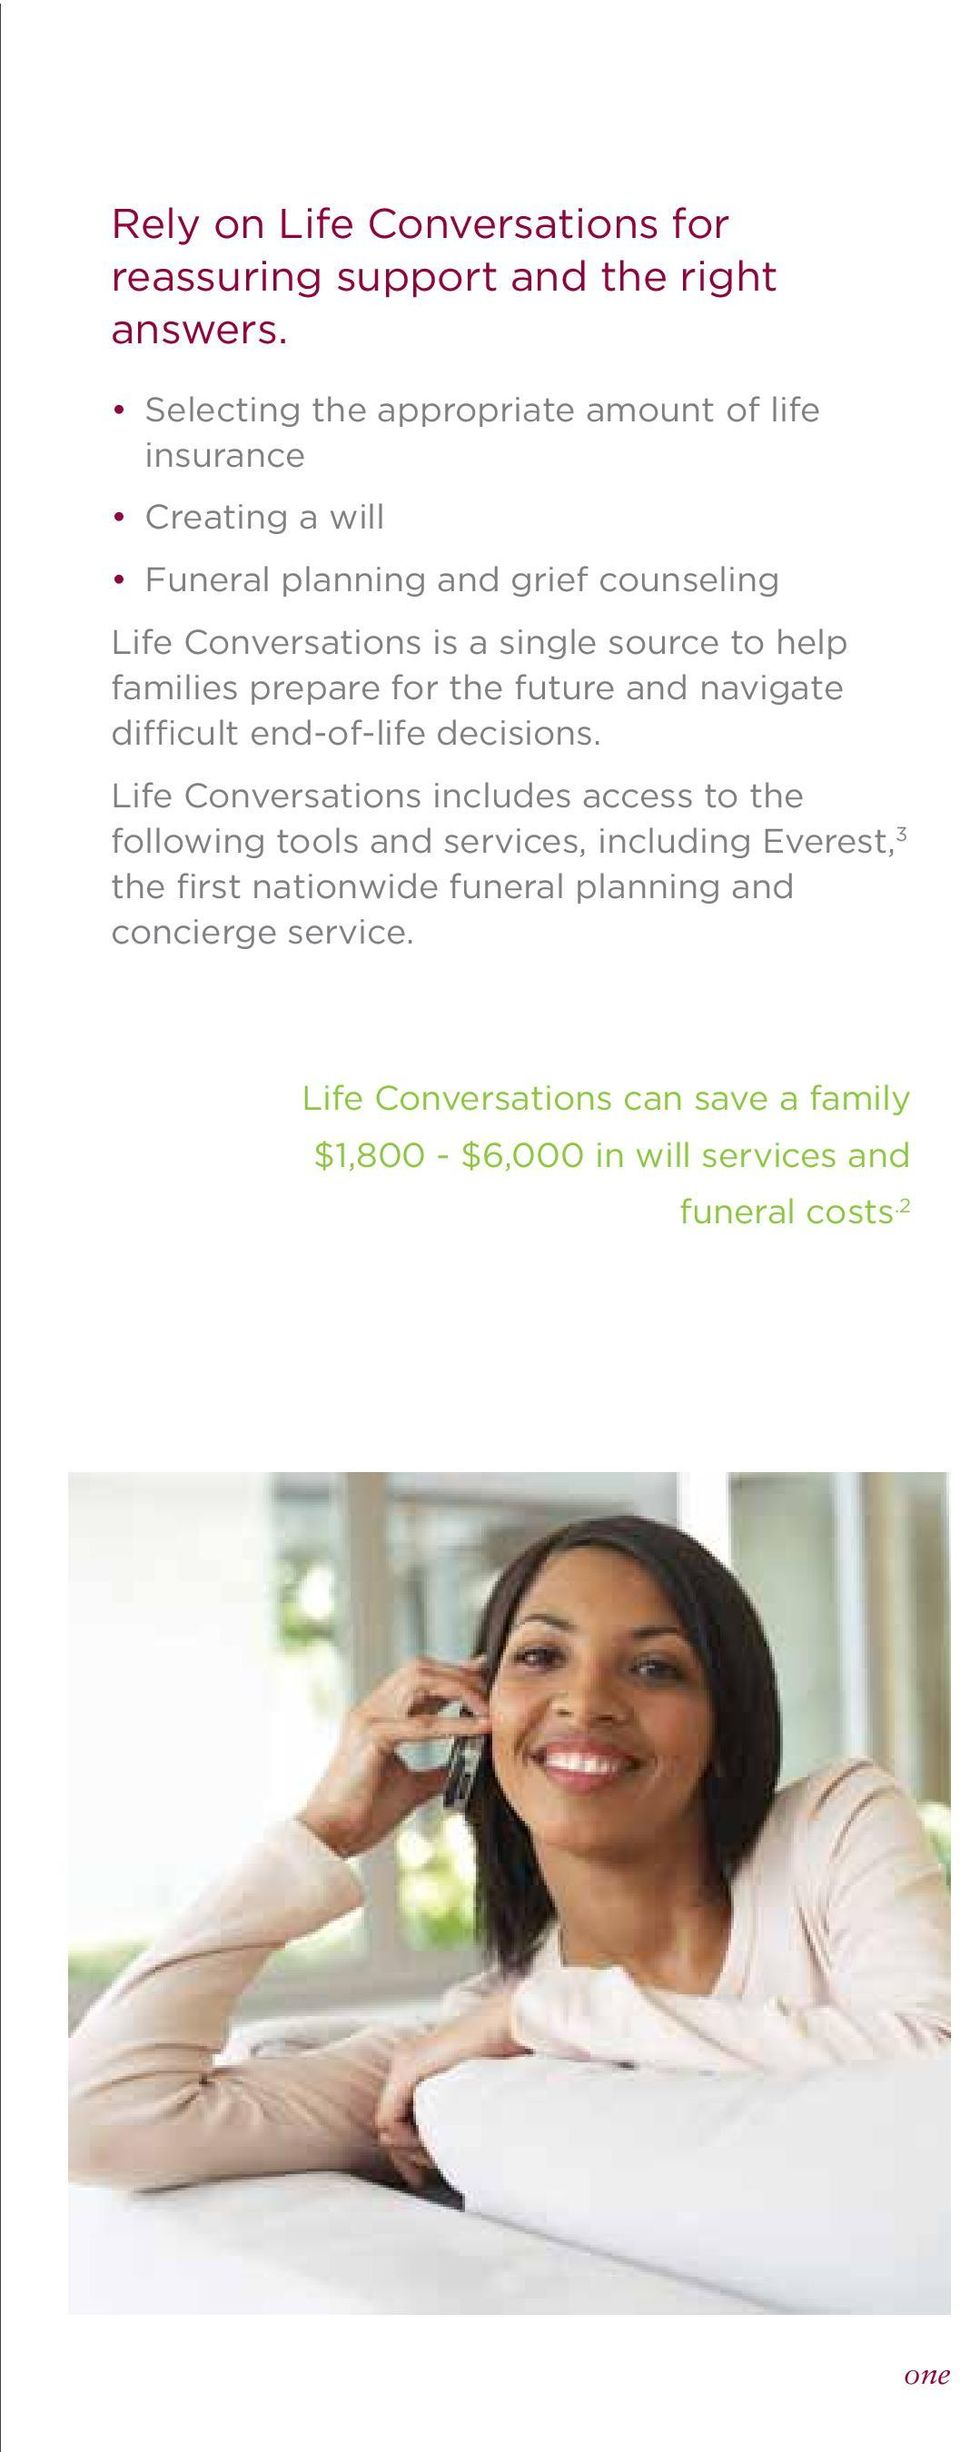 source to help families prepare for the future and navigate difficult end-of-life decisions.